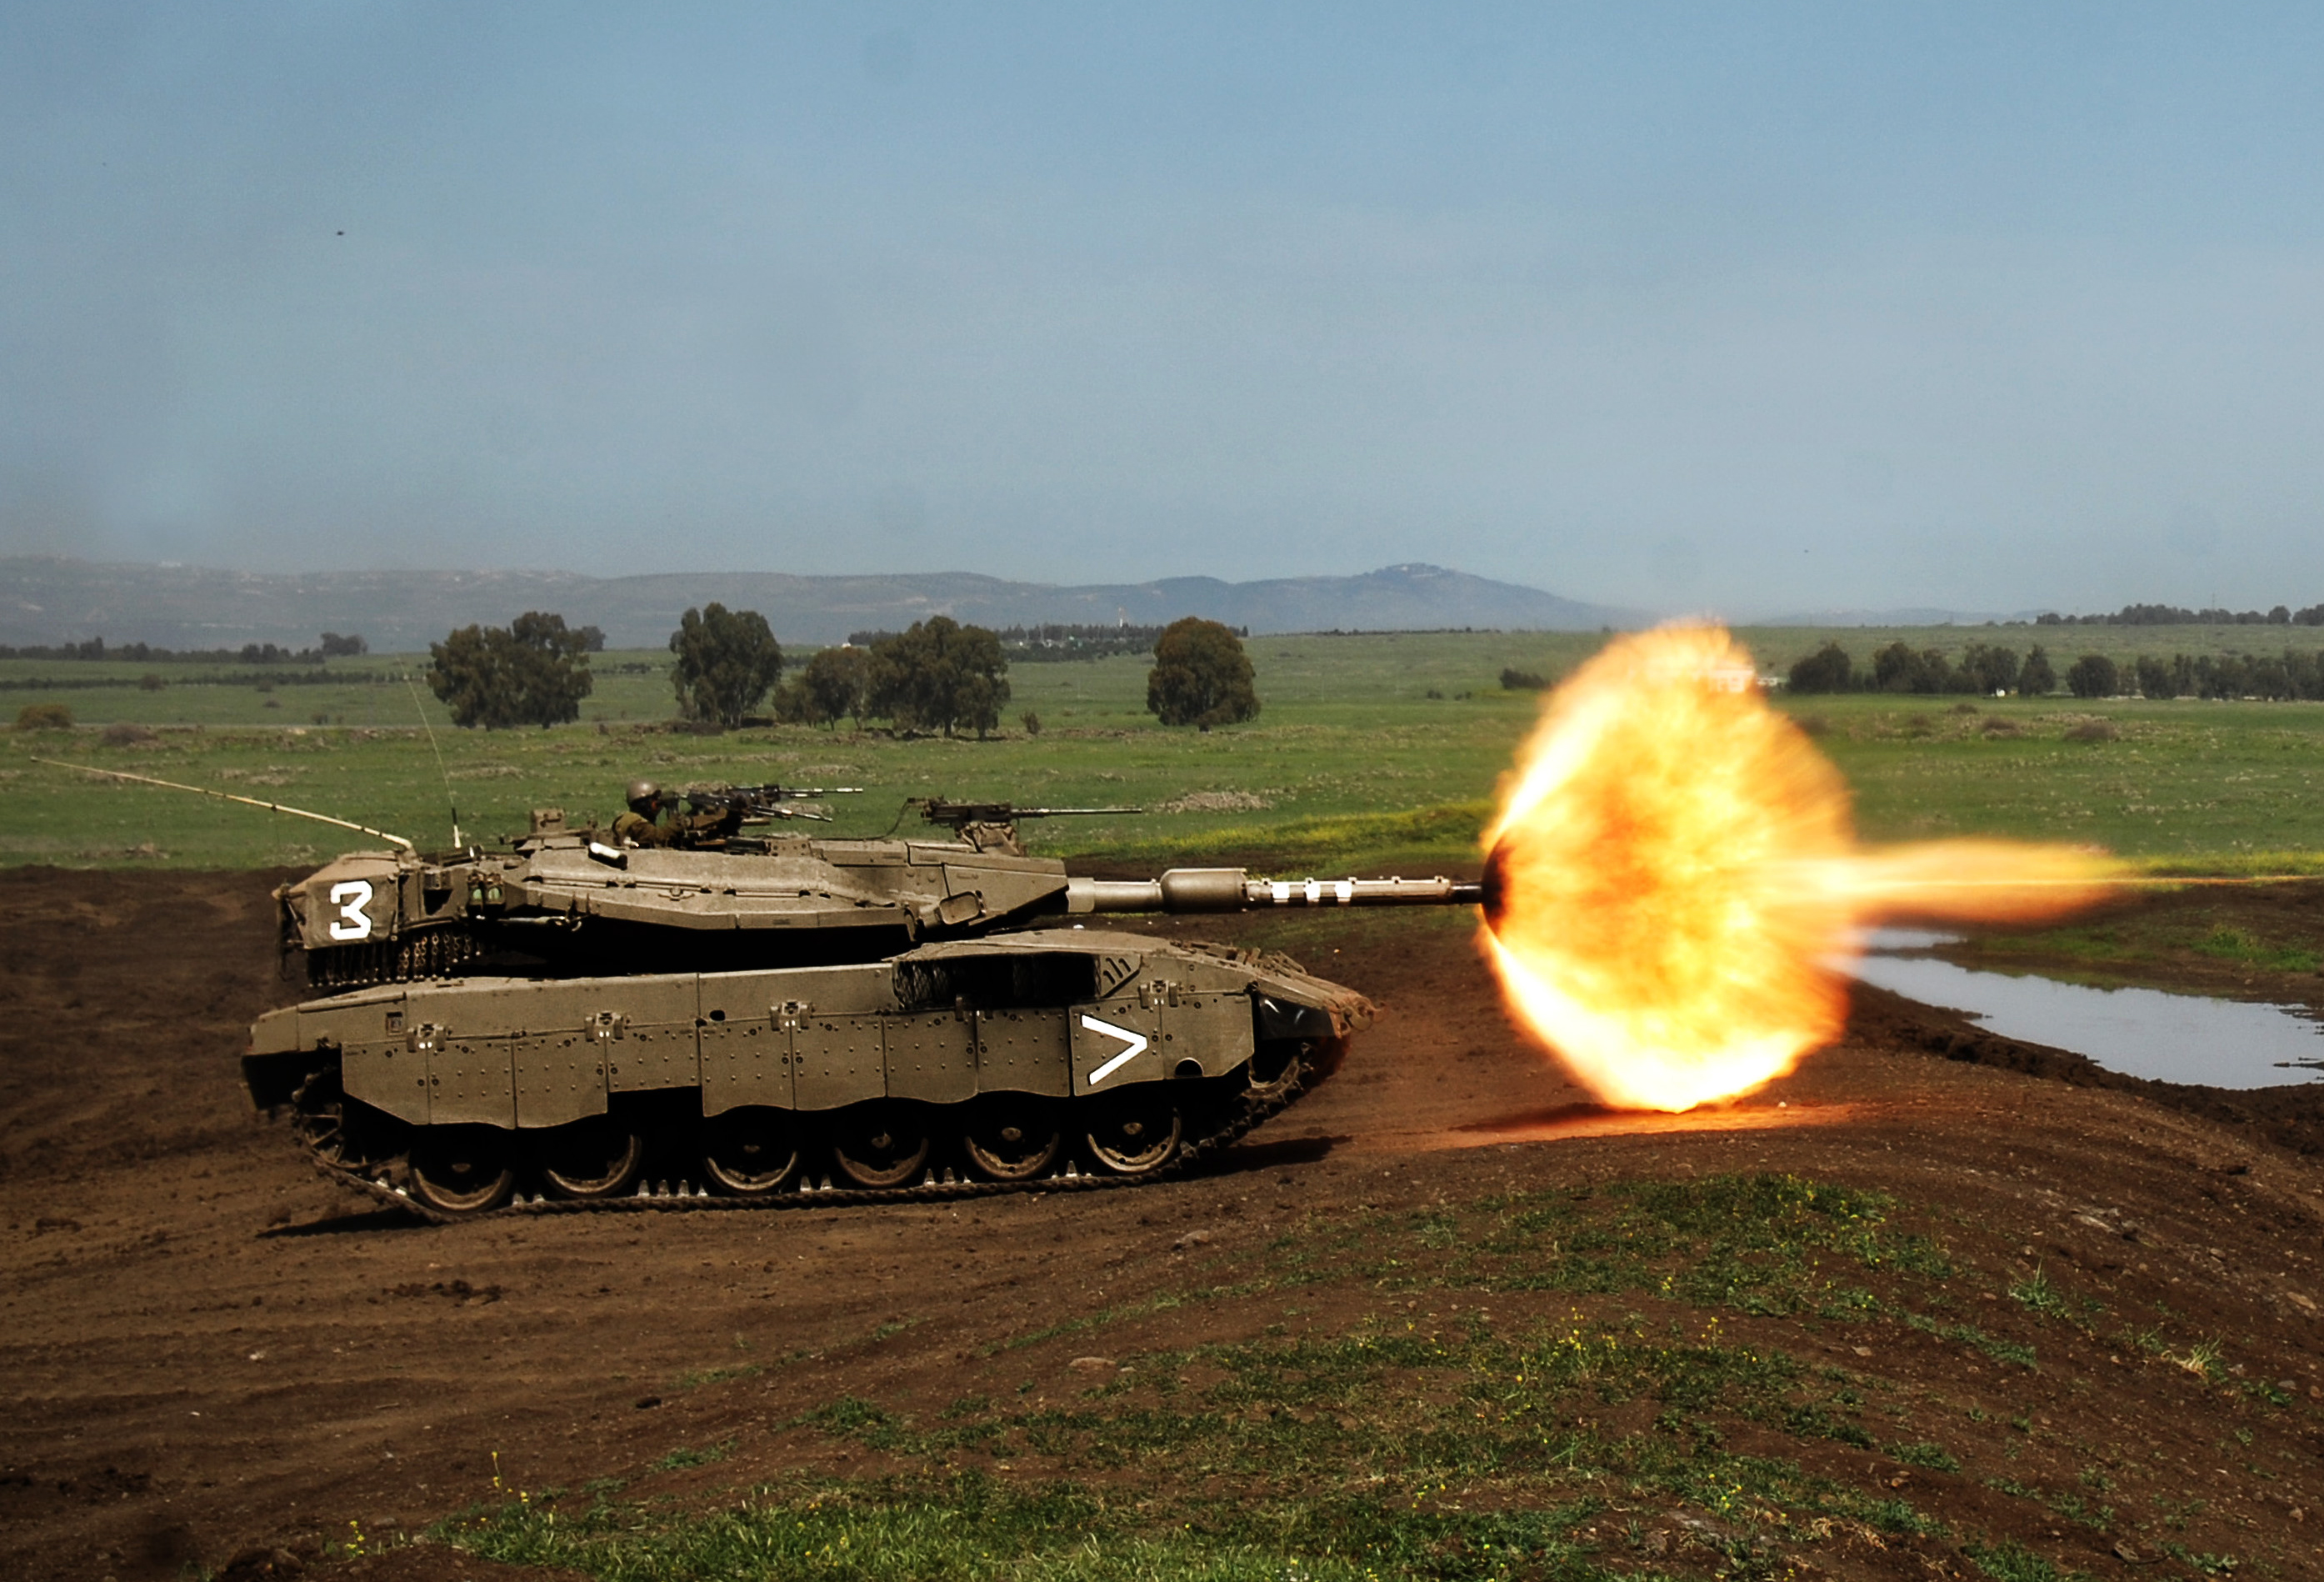 Name:  Flickr_-_Israel_Defense_Forces_-_188th_Brigade_Training_Day,_March_2008-cropped.jpg Views: 32 Size:  2.21 MB